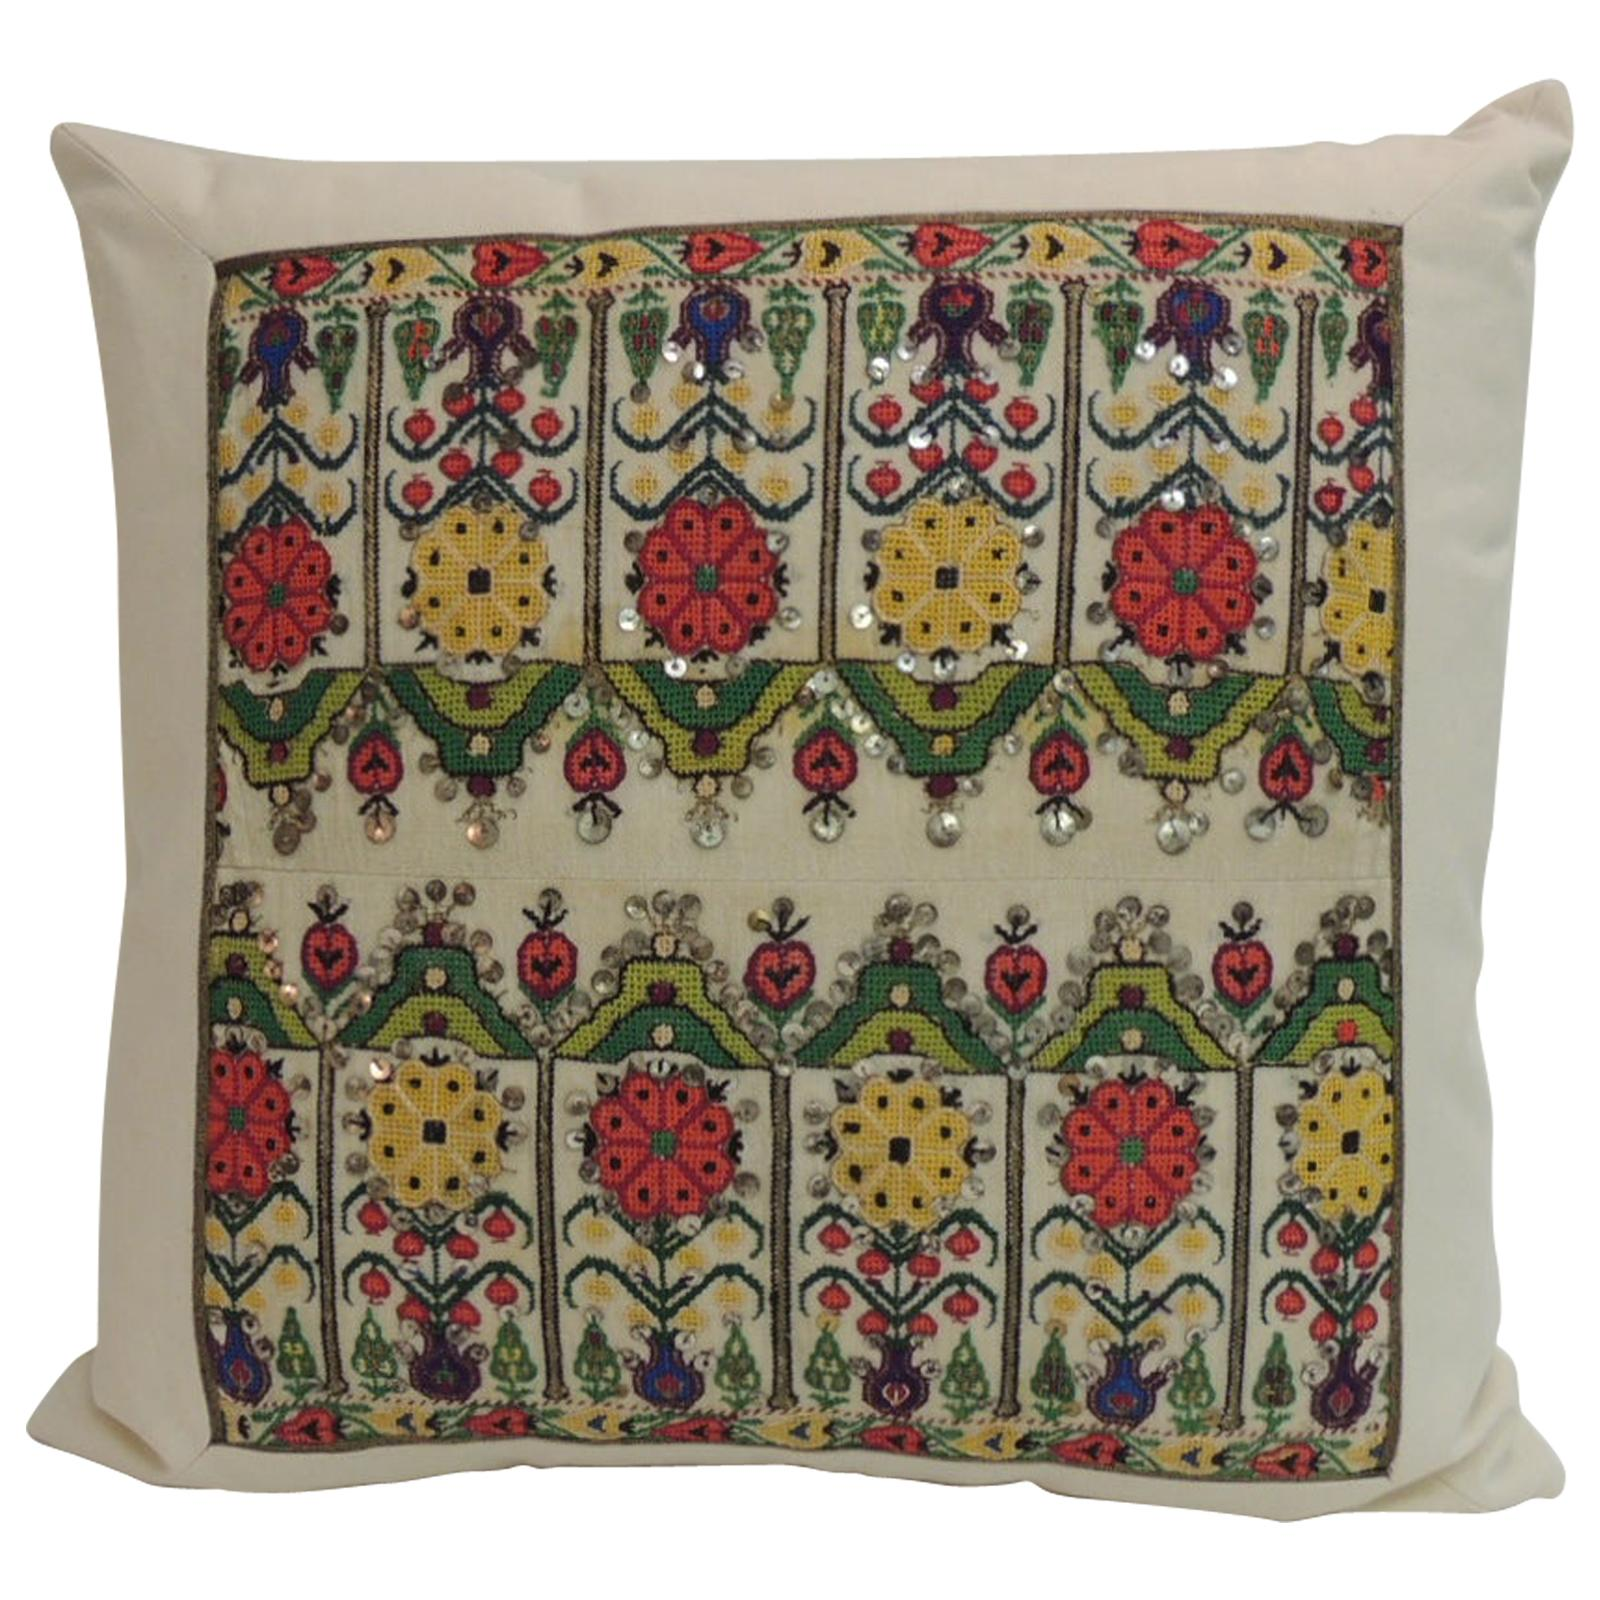 Petite Red and Yellow Turkish Colorful Embroidery Square Decorative Pillow